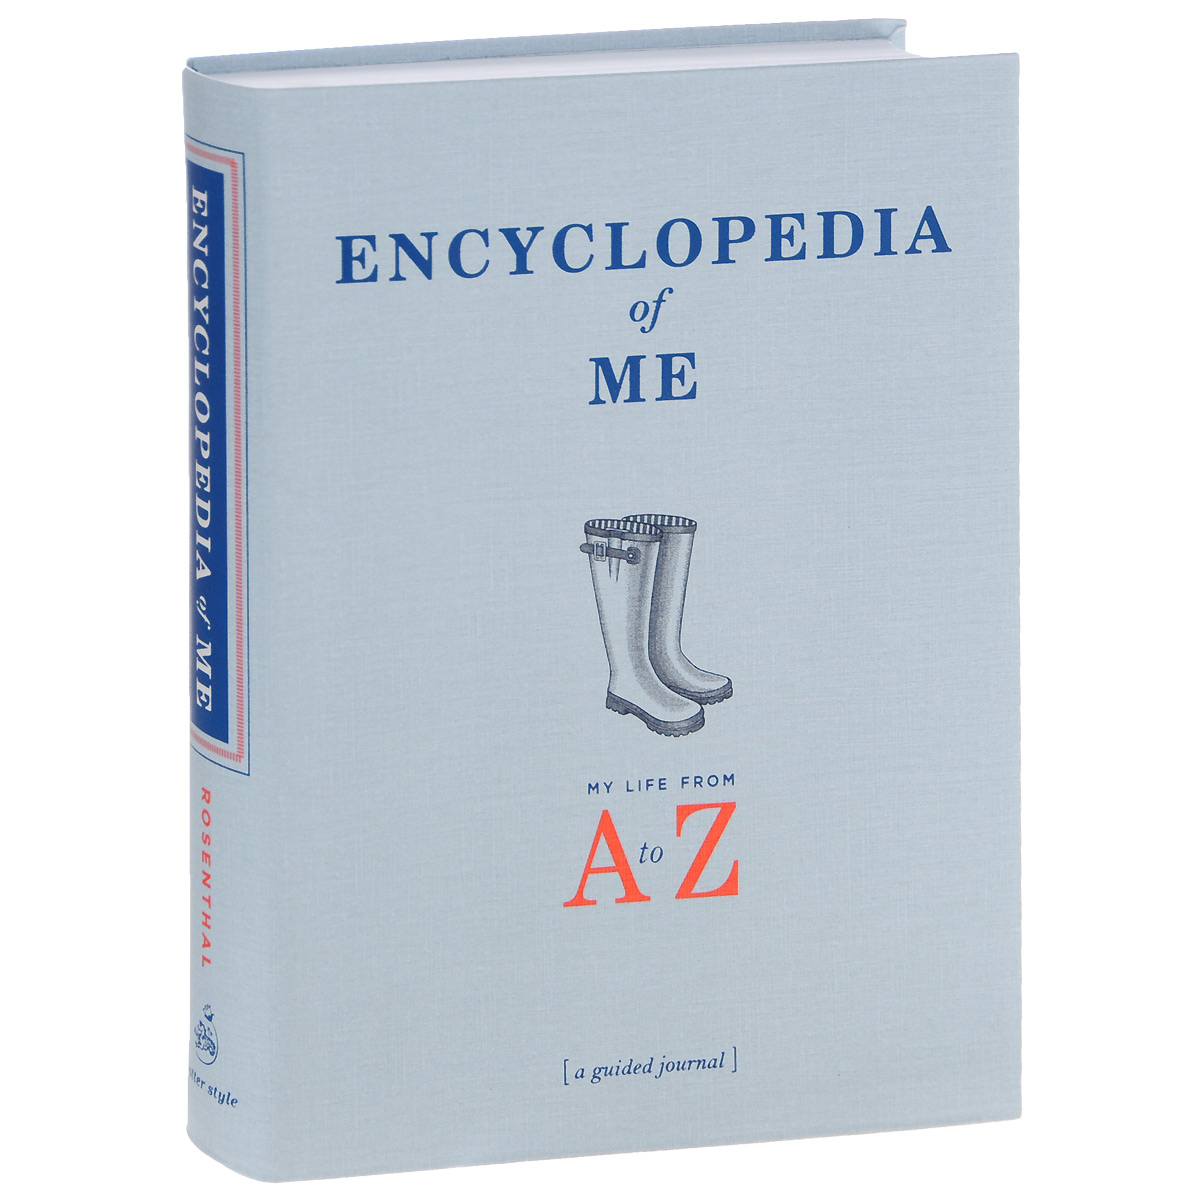 Encyclopedia of Me: My Life from A to Z: A Guided Journal мужские часы cerruti 1881 cra011f224c